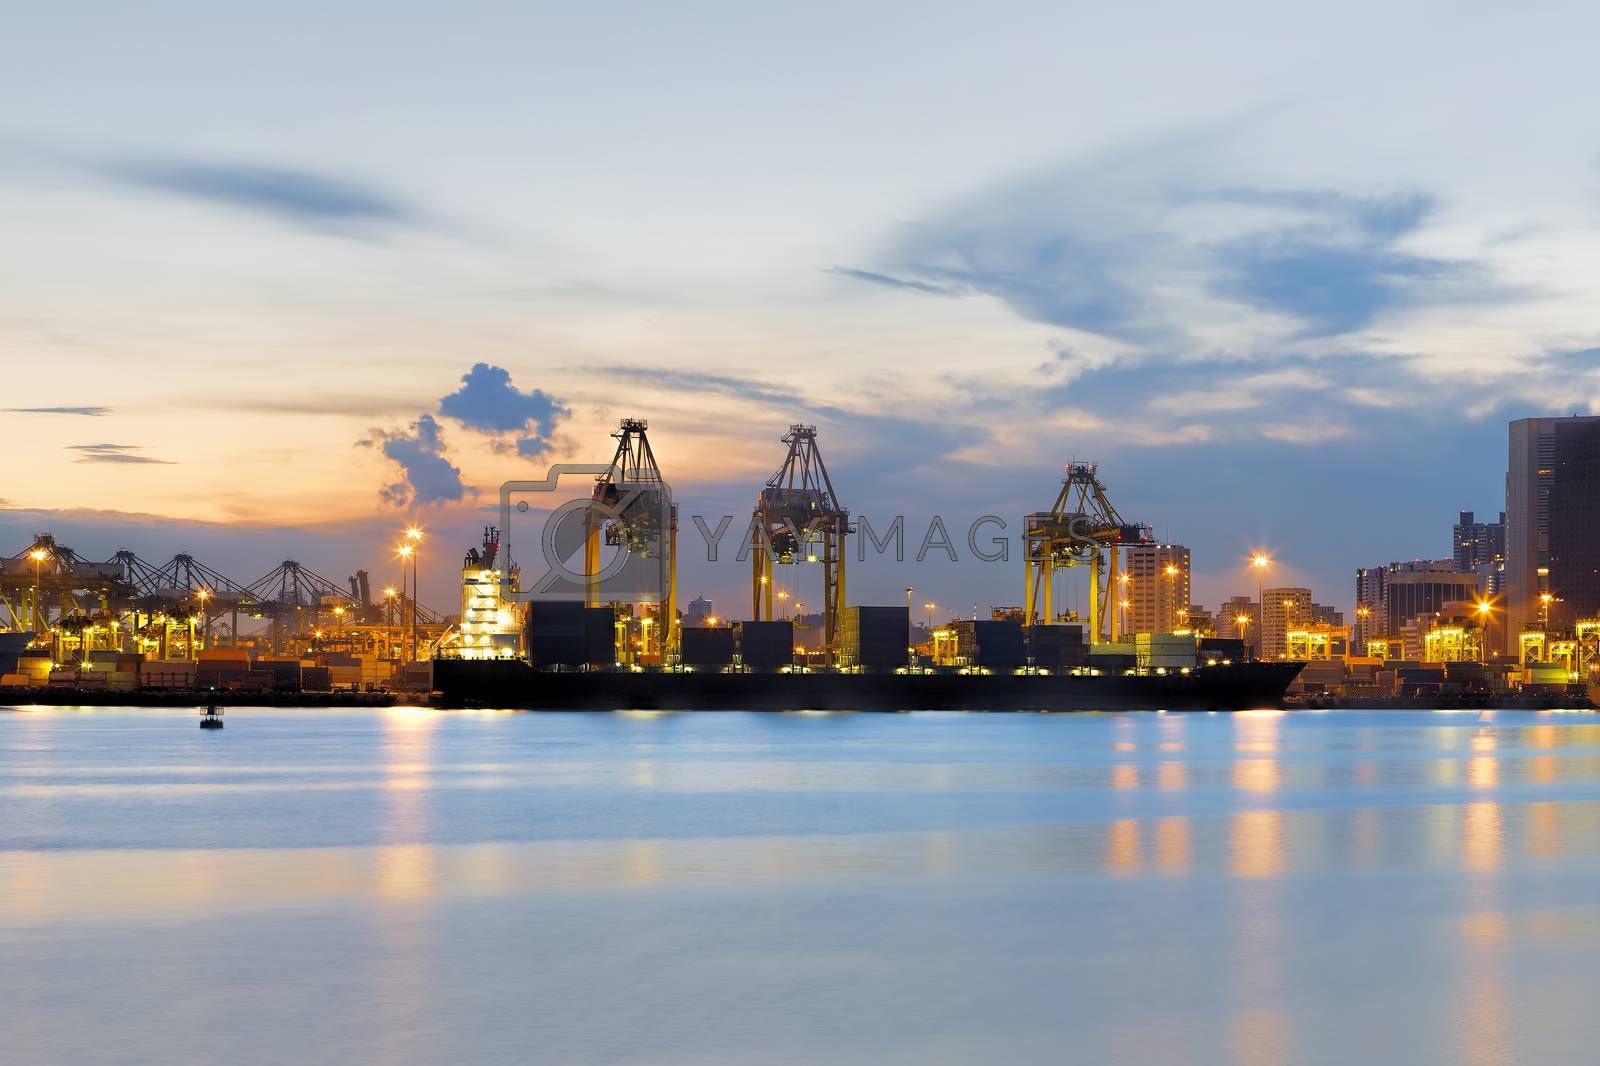 View of Singapore container port at sunset